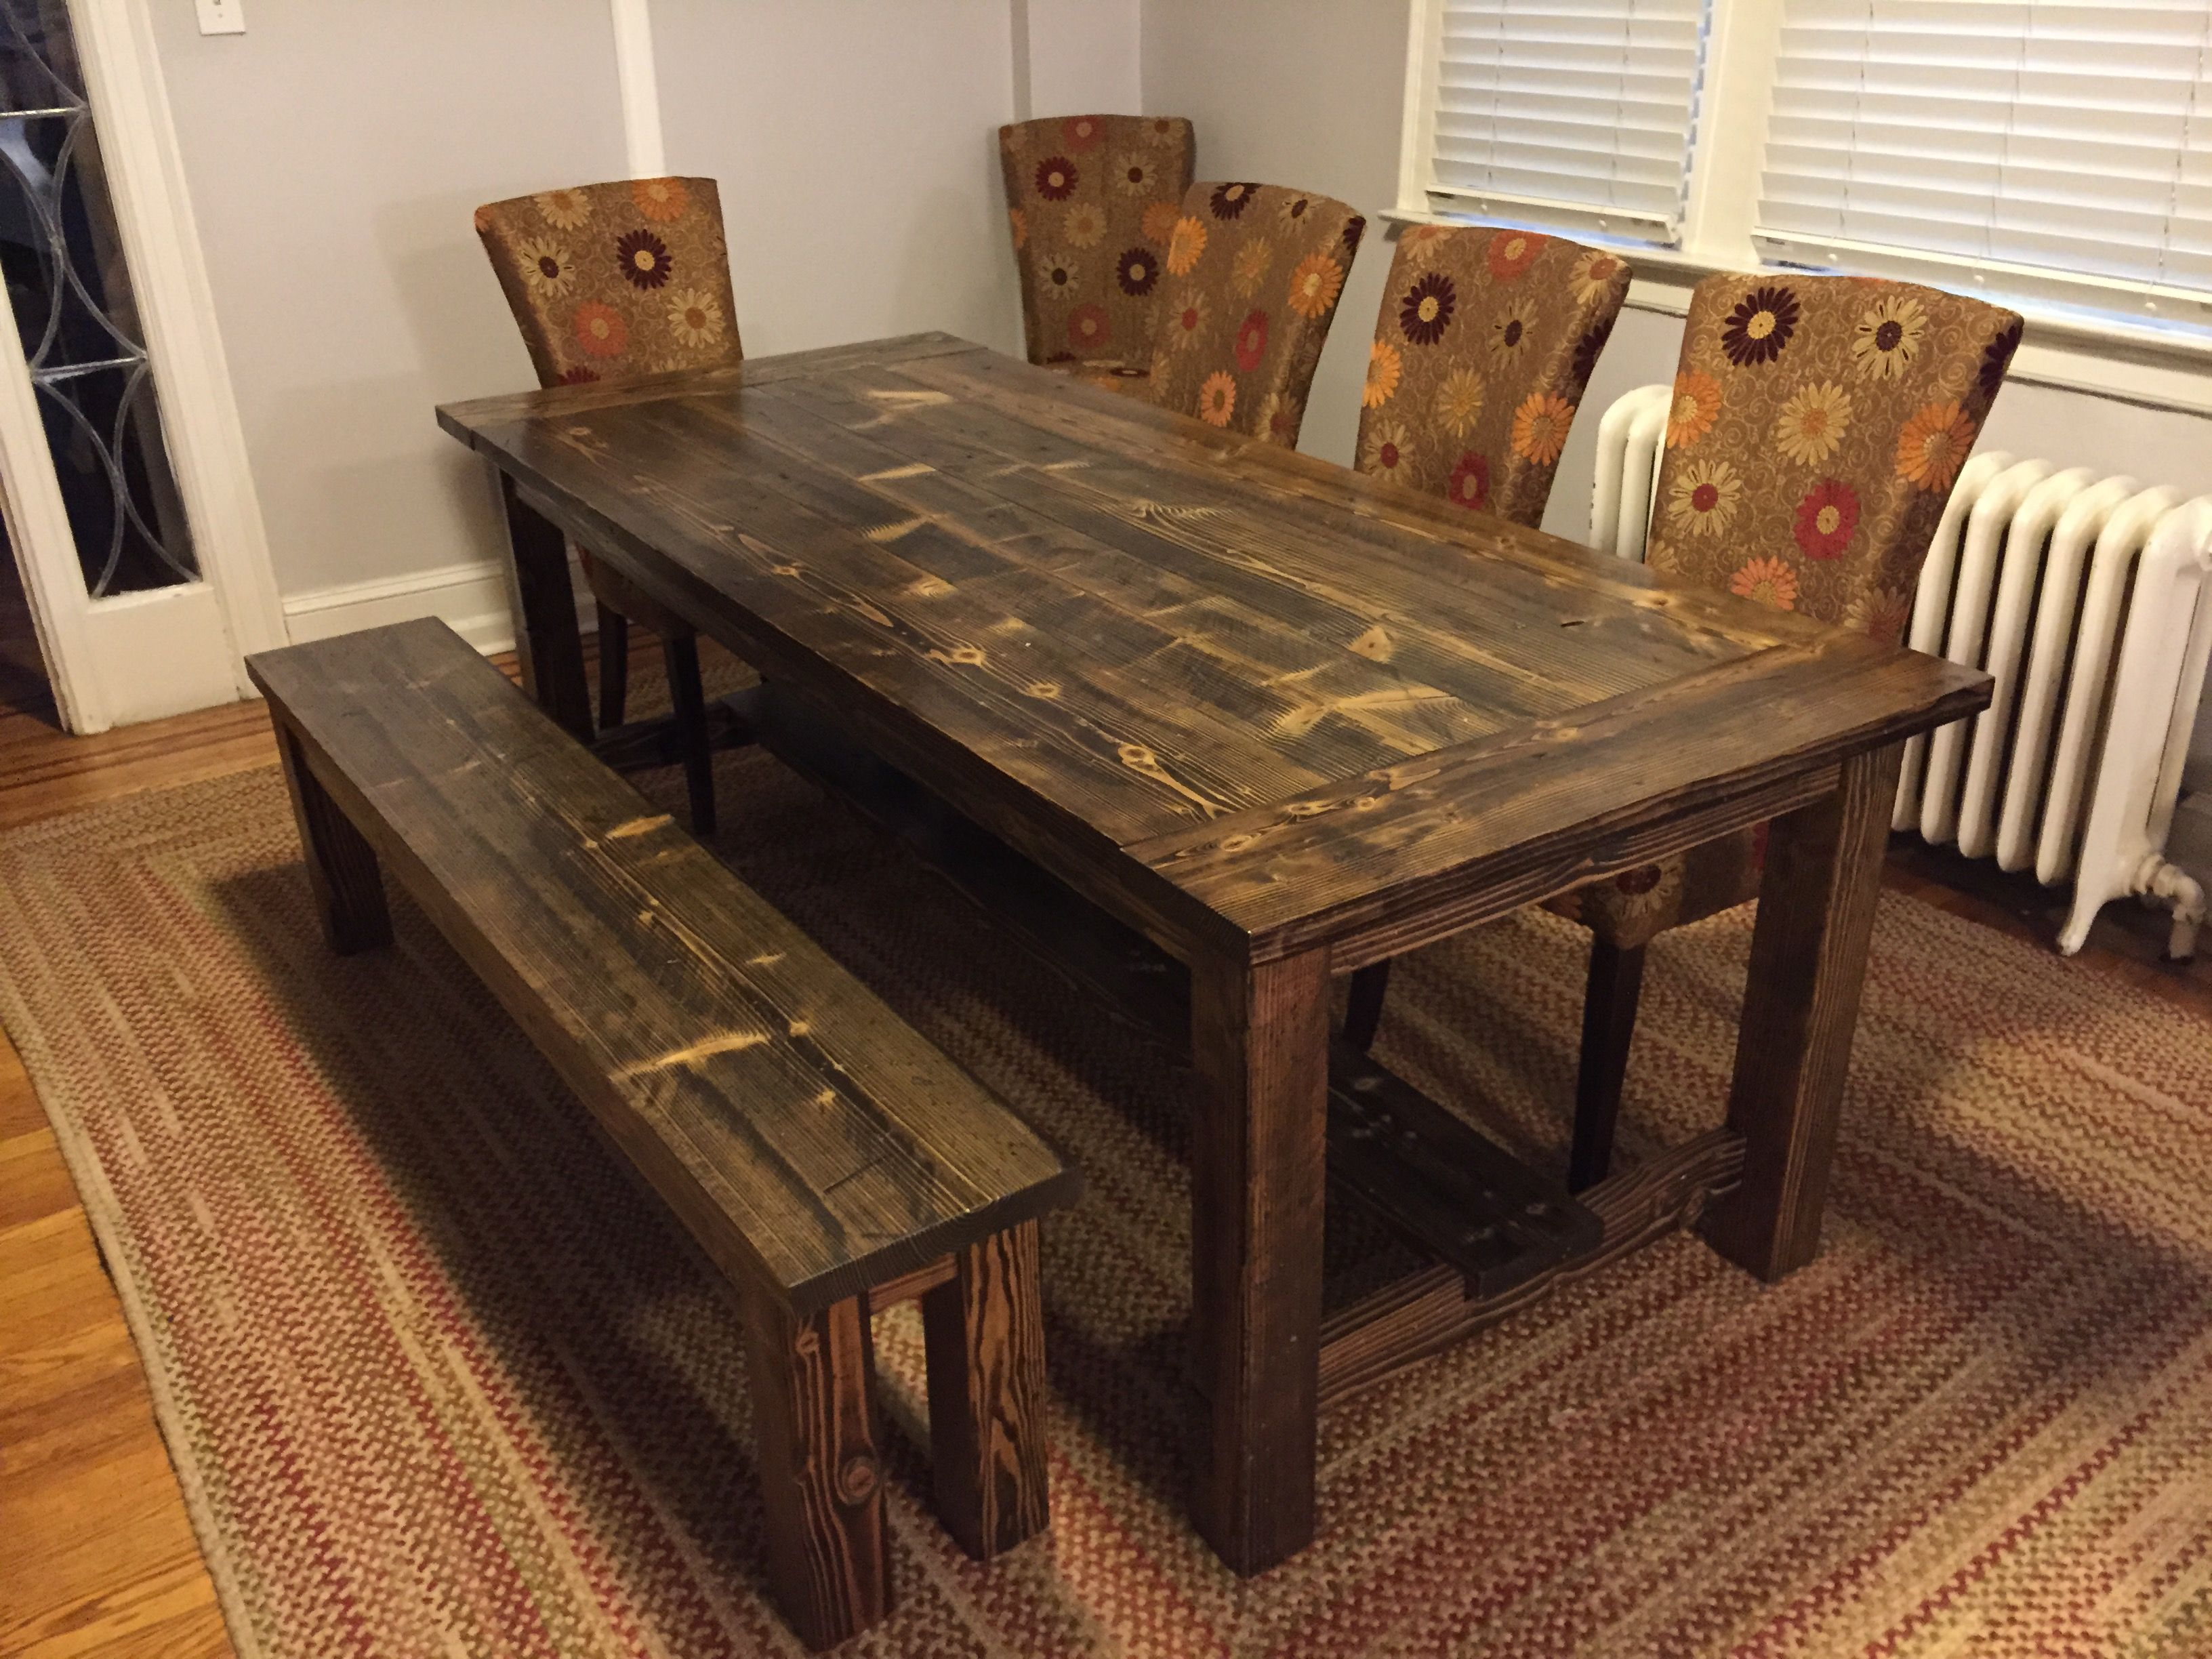 Solid Wood Farmhouse Table With Stretchers And Breadboards. Matching Wooden  Bench. Distressed Dark Walnut. Harvest Table. Kitchen Table. Dining Table.